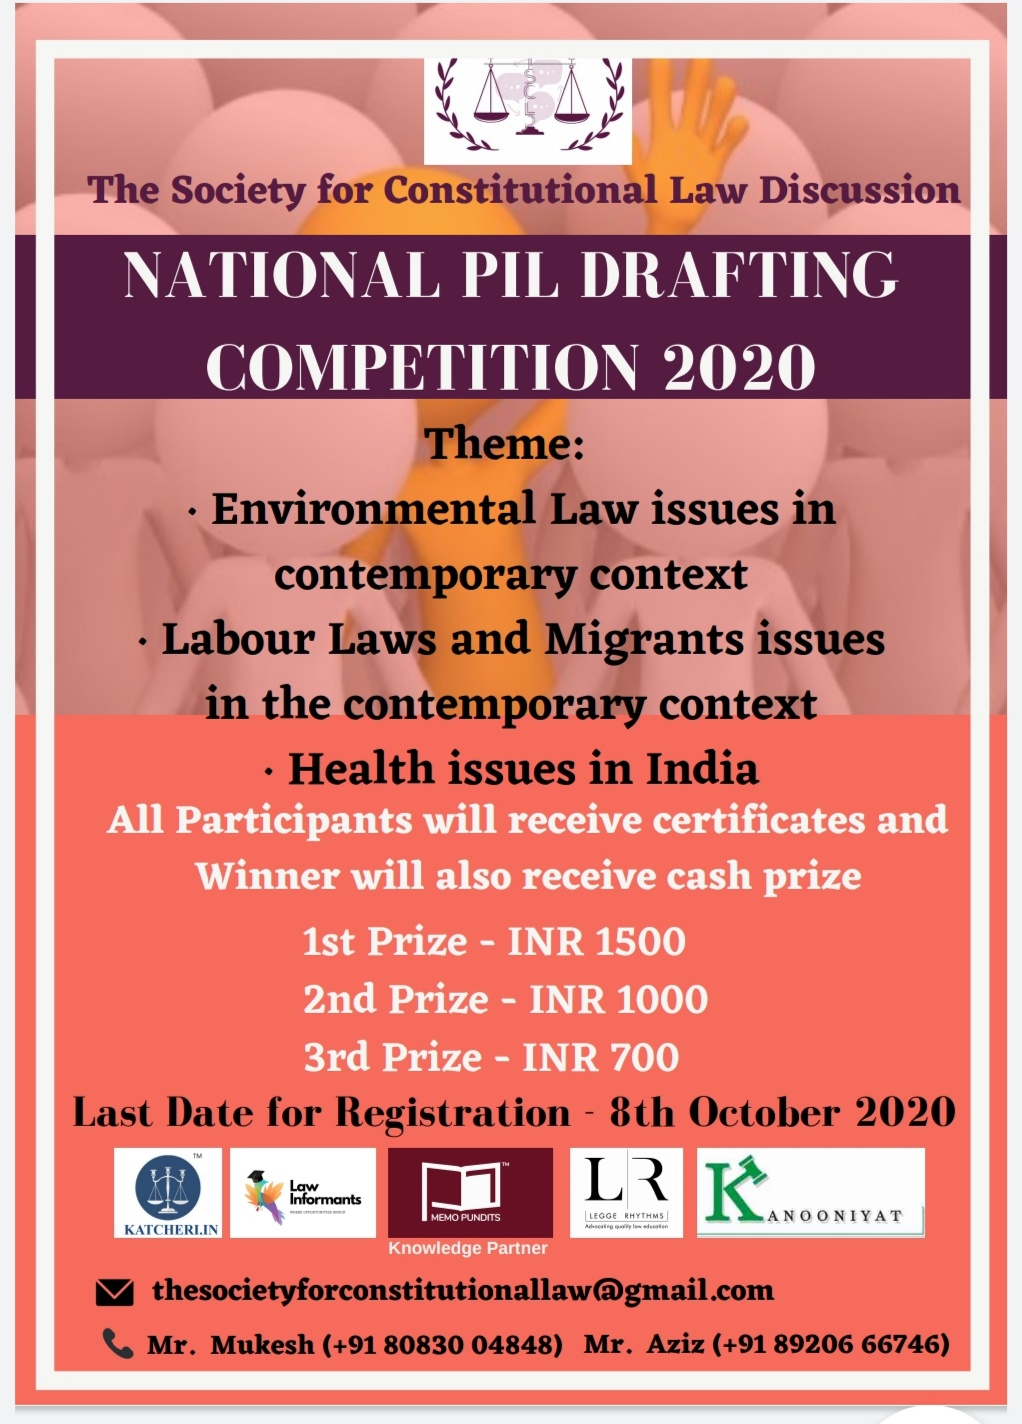 NATIONAL PIL DRAFTING COMPETITION AT THE SOCIETY FOR CONSTITUTIONAL LAW DISCUSSION (TSCLD) REGISTER BEFORE 8THOCT